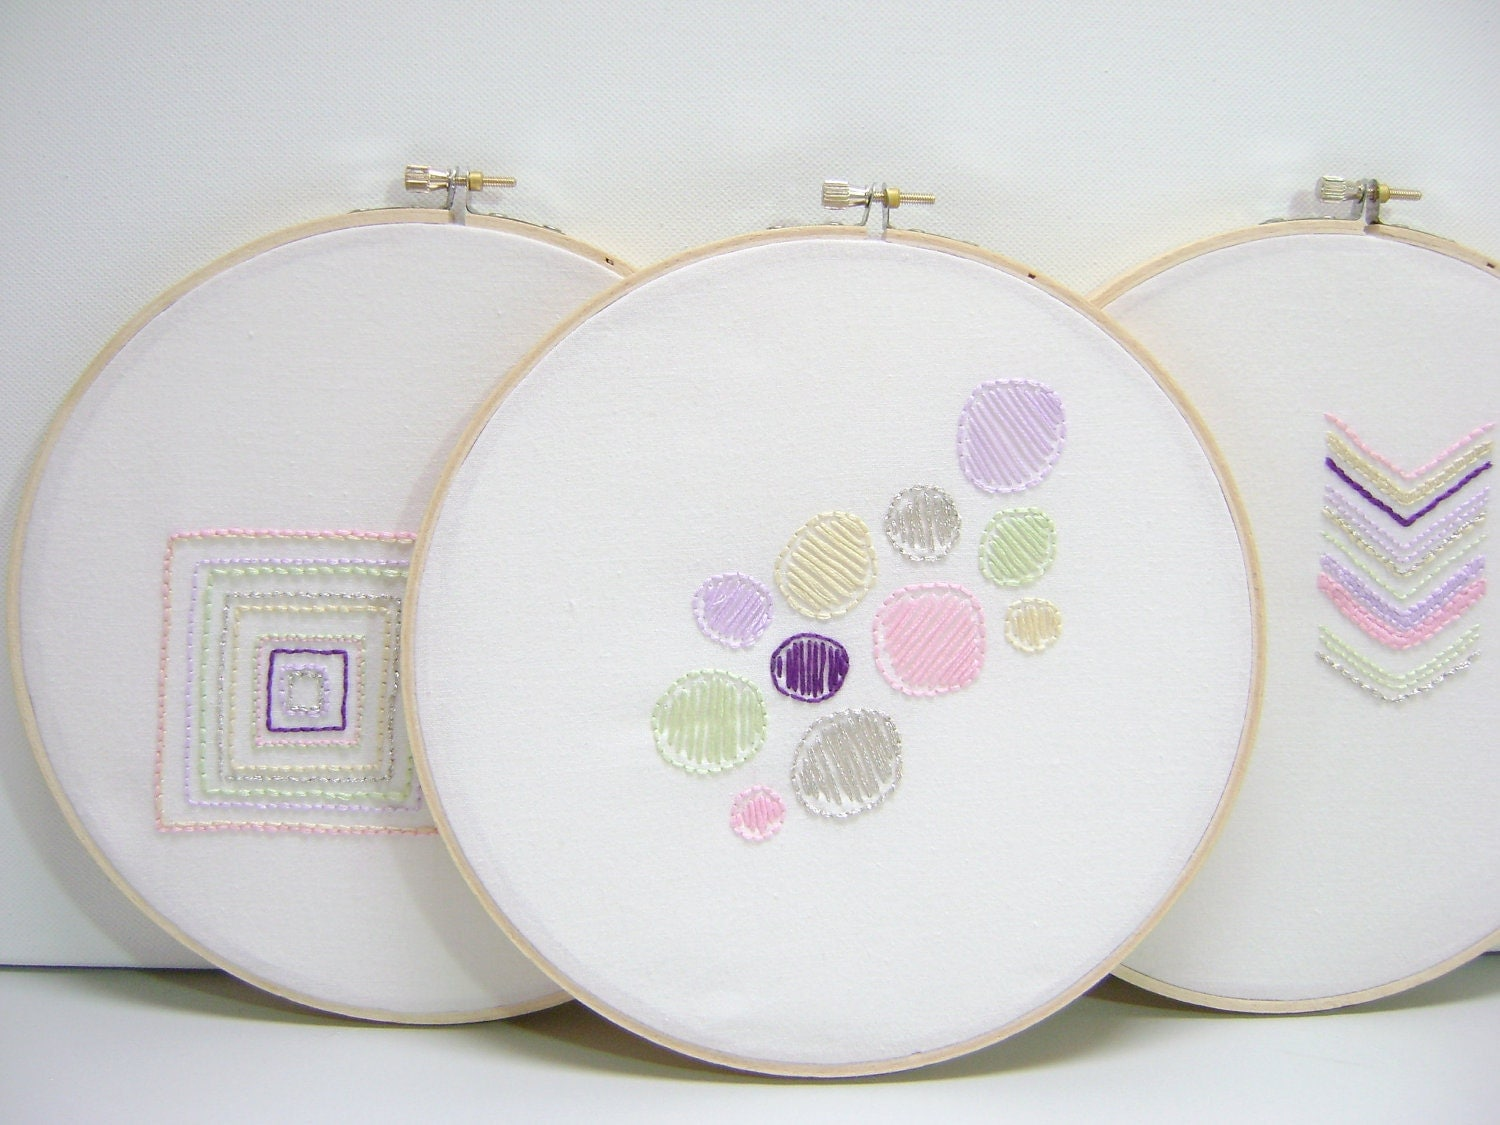 Nursery Wall Art Embroidery Hoops Children Decor Pastel Shapes Ooak Set of 3 Handmade by MissSarahMac on Etsy - MissSarahMac